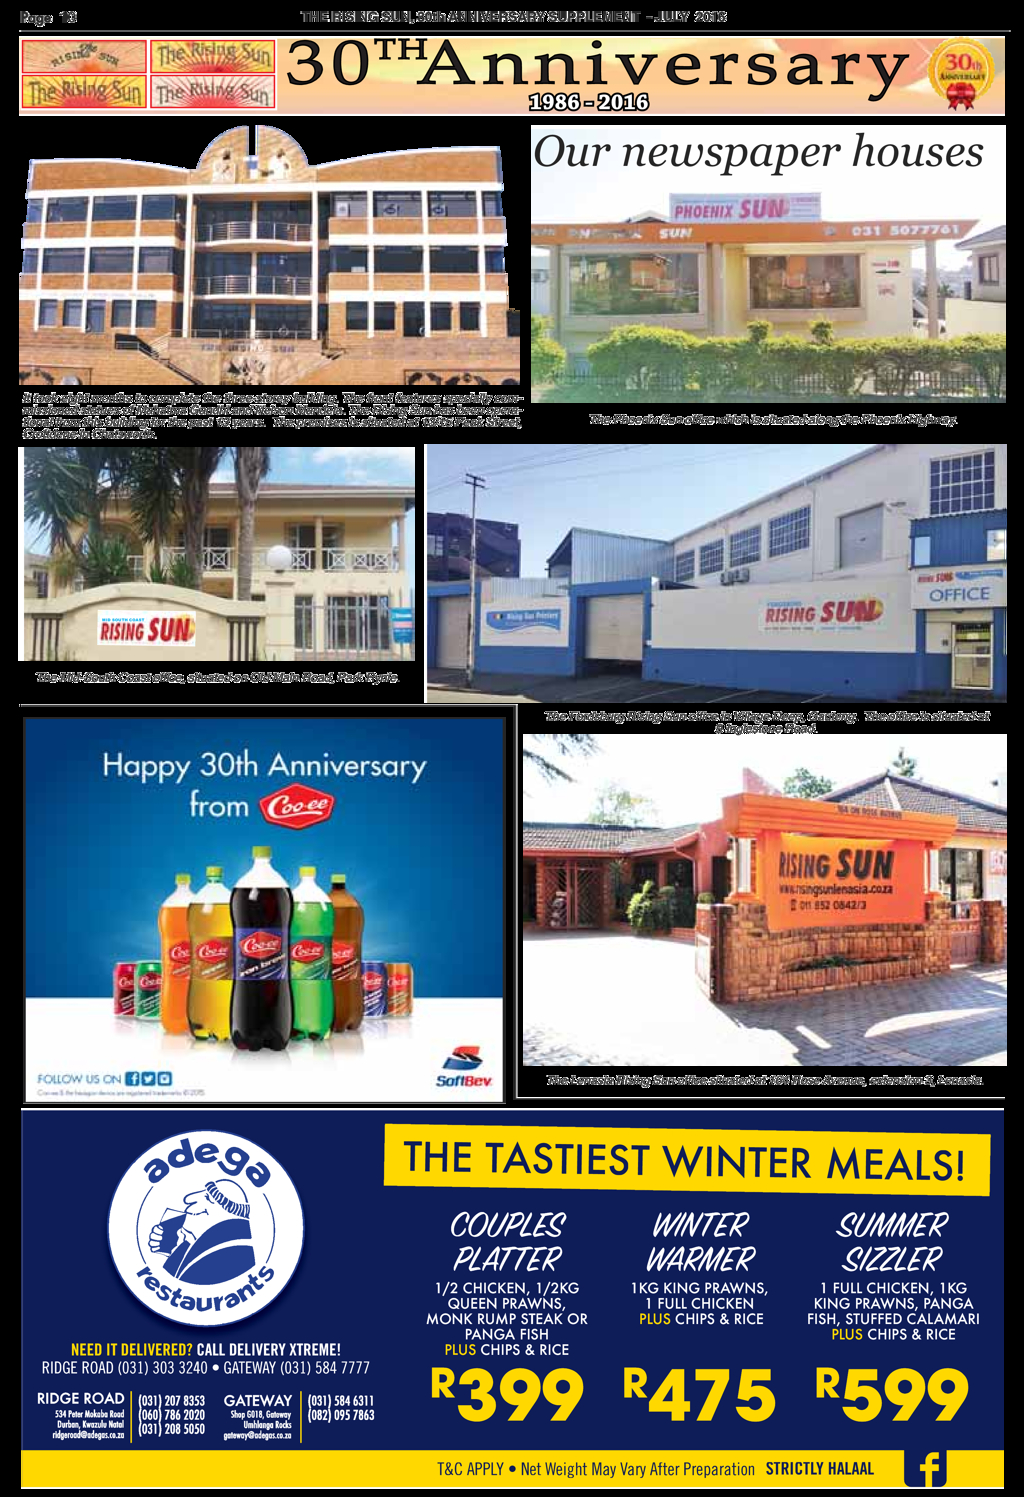 celebrating-our-30th-anniversary-epapers-page-10